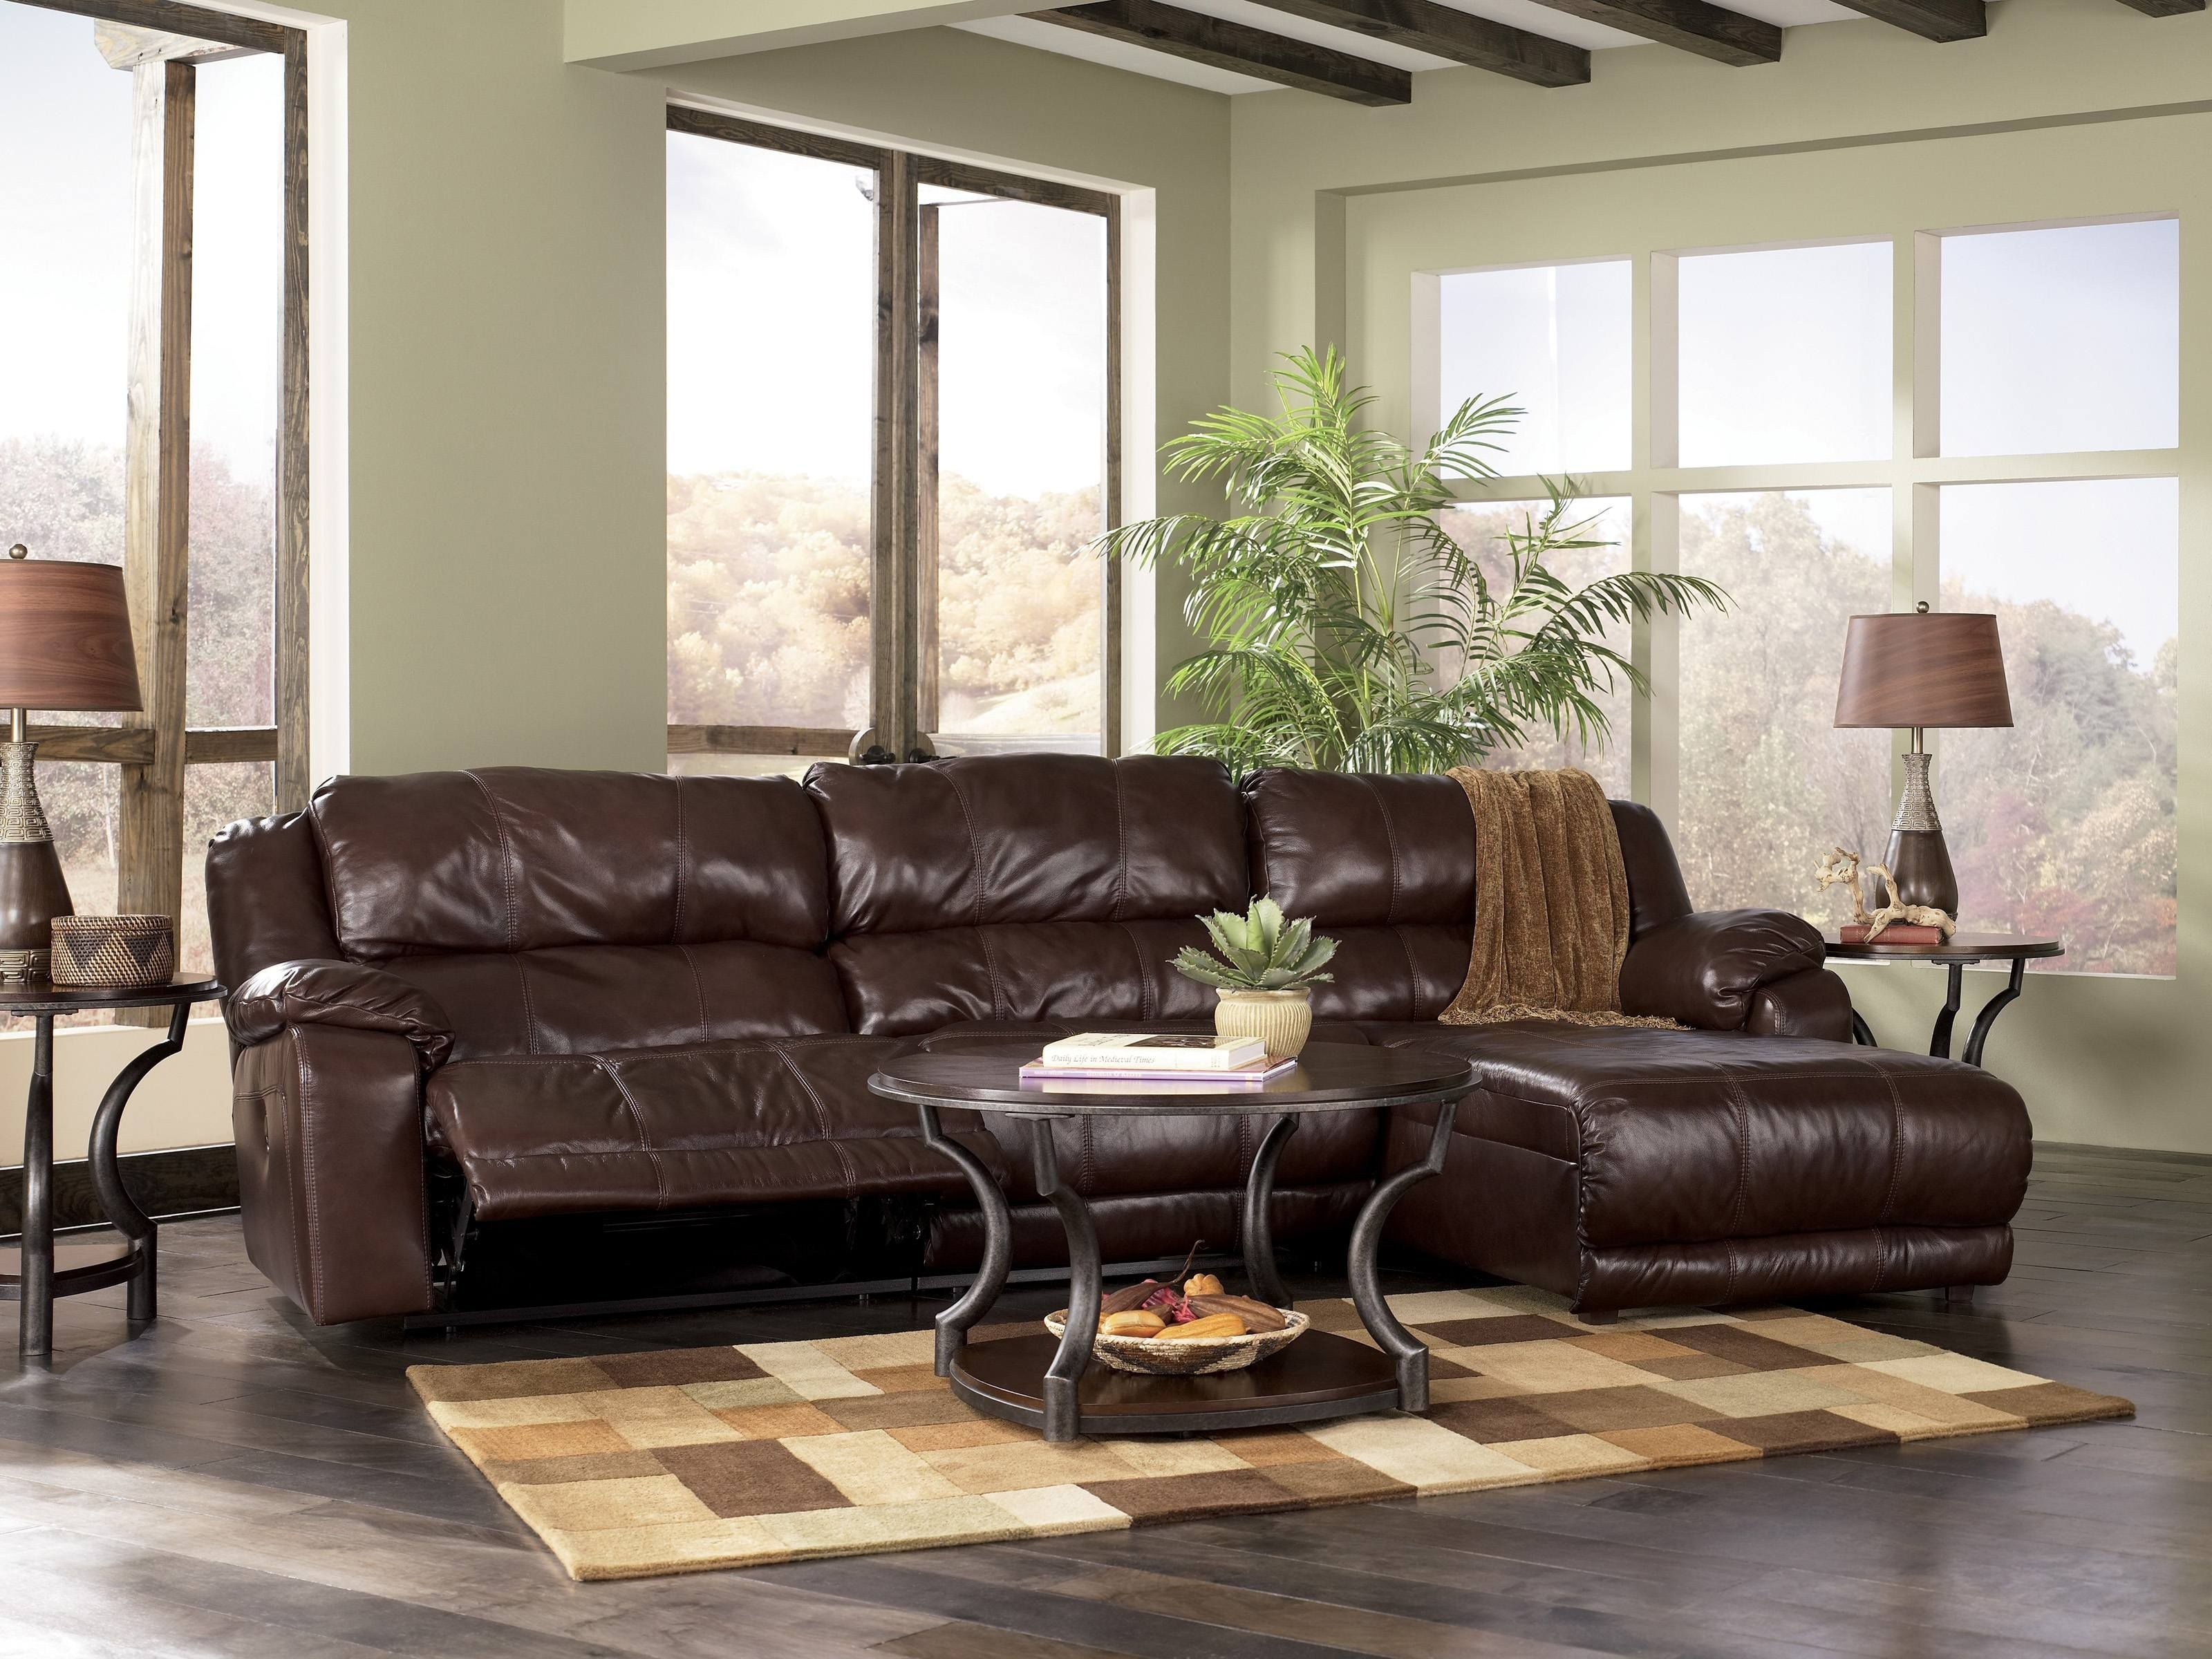 Sectional Sofas With Recliners   Johnson Leather Sofa With Recliner For Knoxville Tn Sectional Sofas (Image 10 of 10)